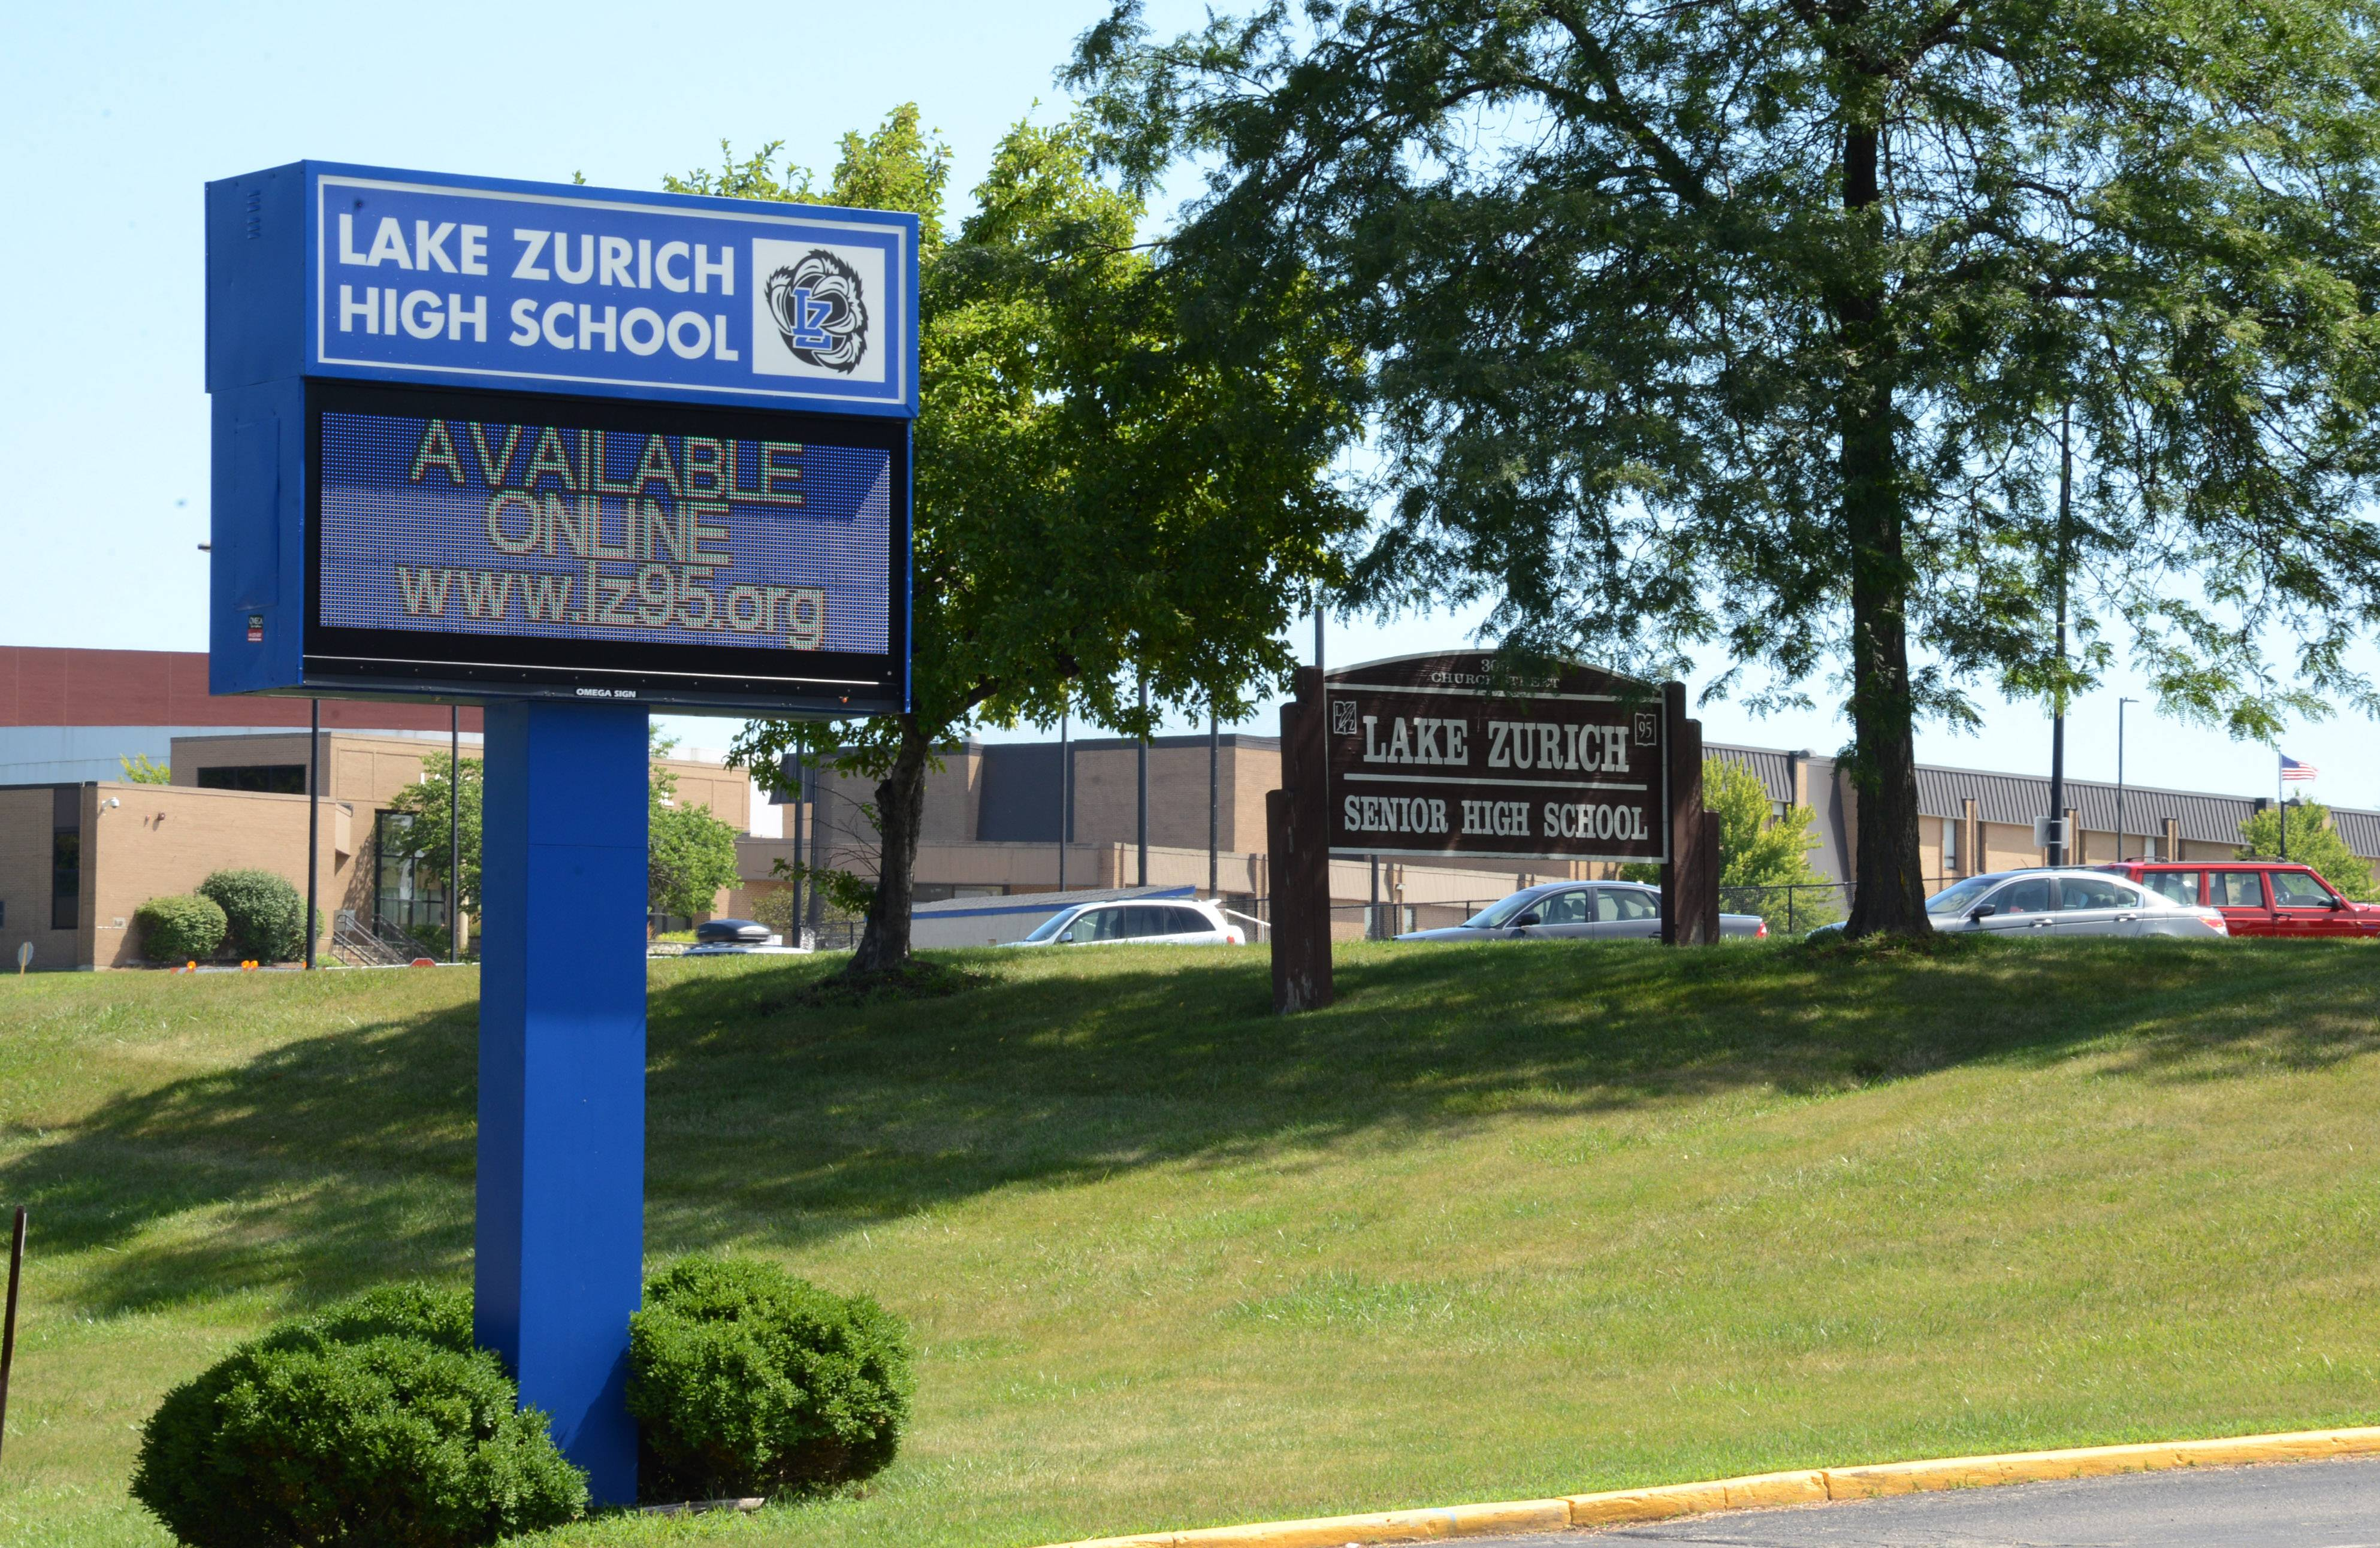 Lake Zurich District 95 to launch search for athletic director, dean